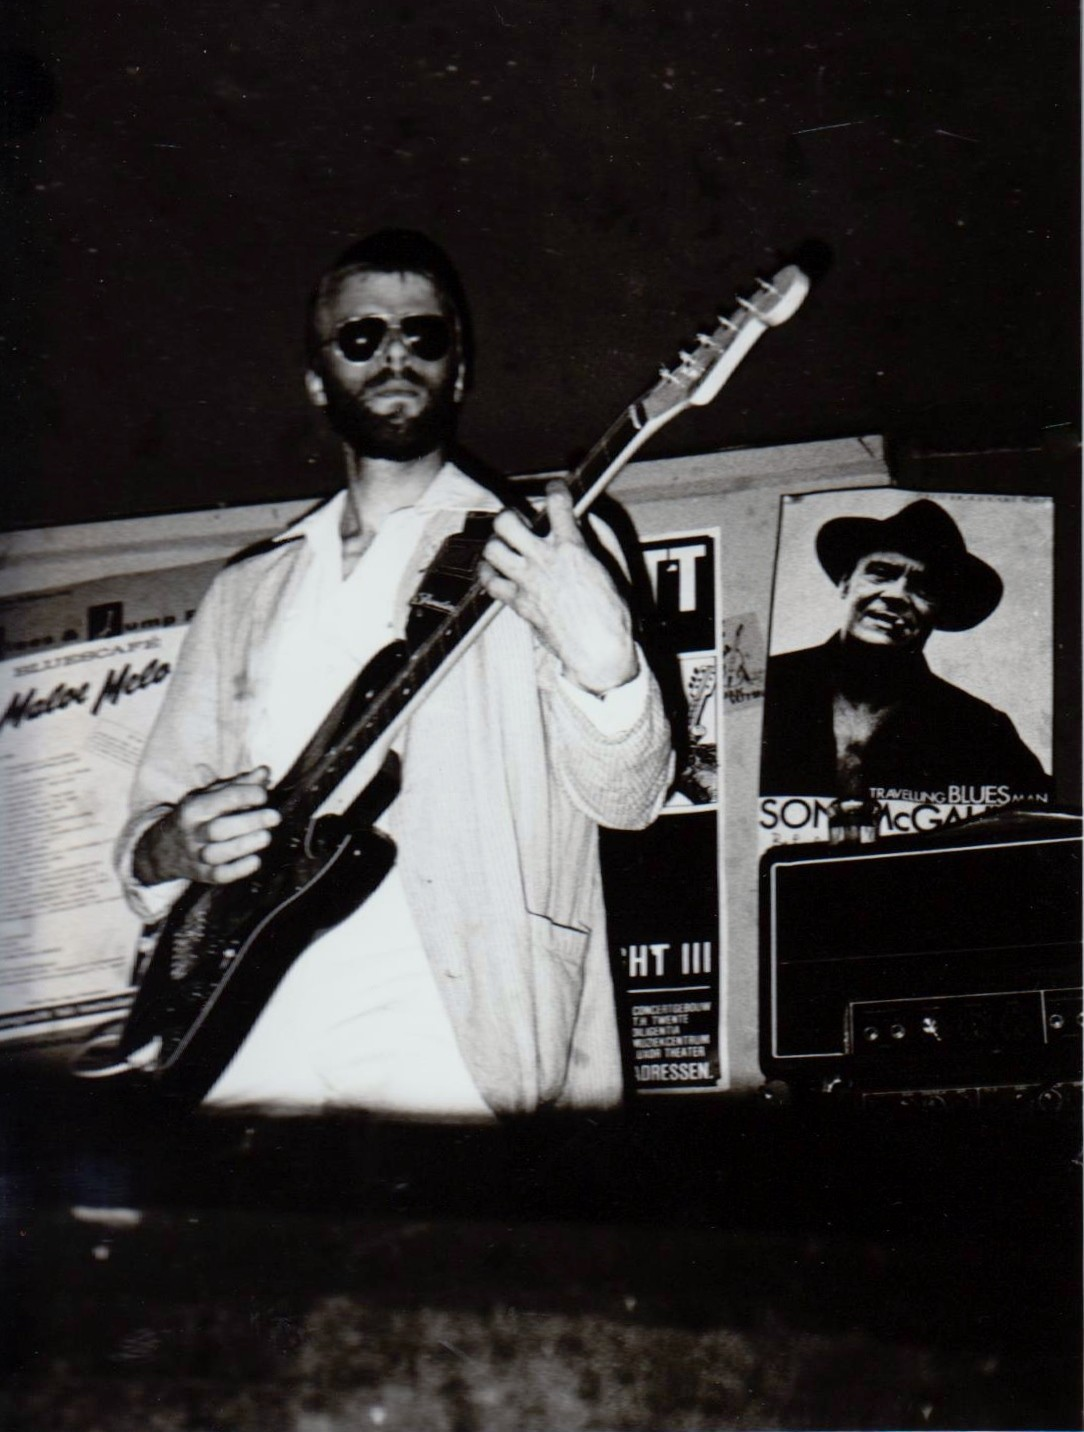 Blues Power 1986 - Maloe Melo Amsterdam